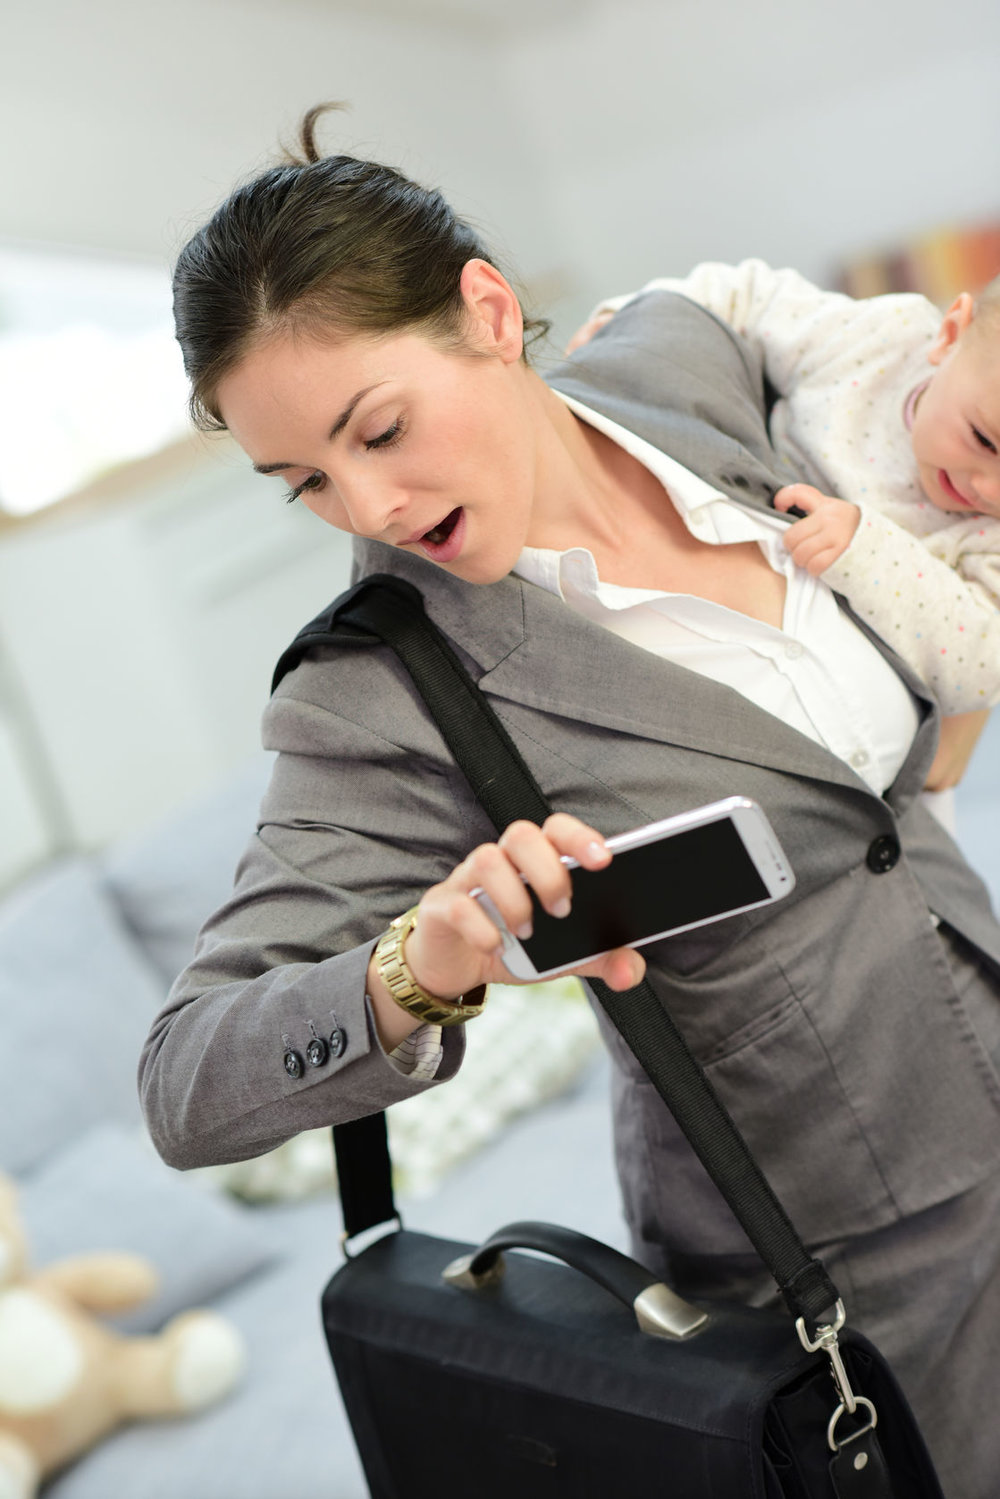 Parents are busier than ever, and these days best reached by phone app.